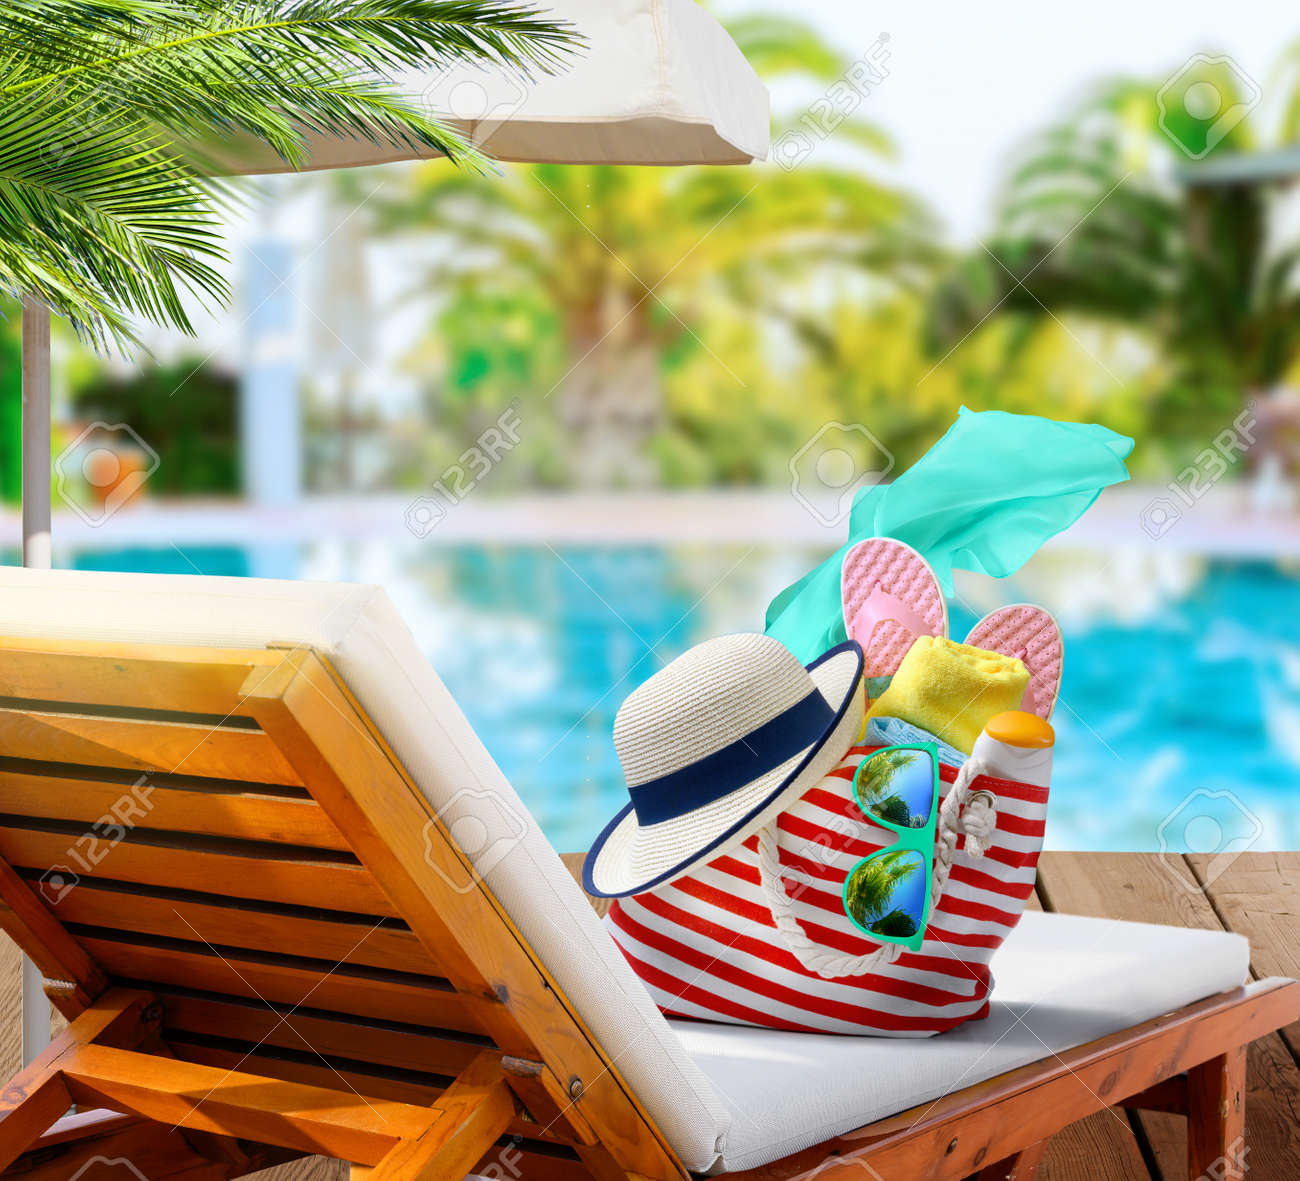 Beach bag with accessories on sun lounger near swimming pool in luxury resort - 171379344